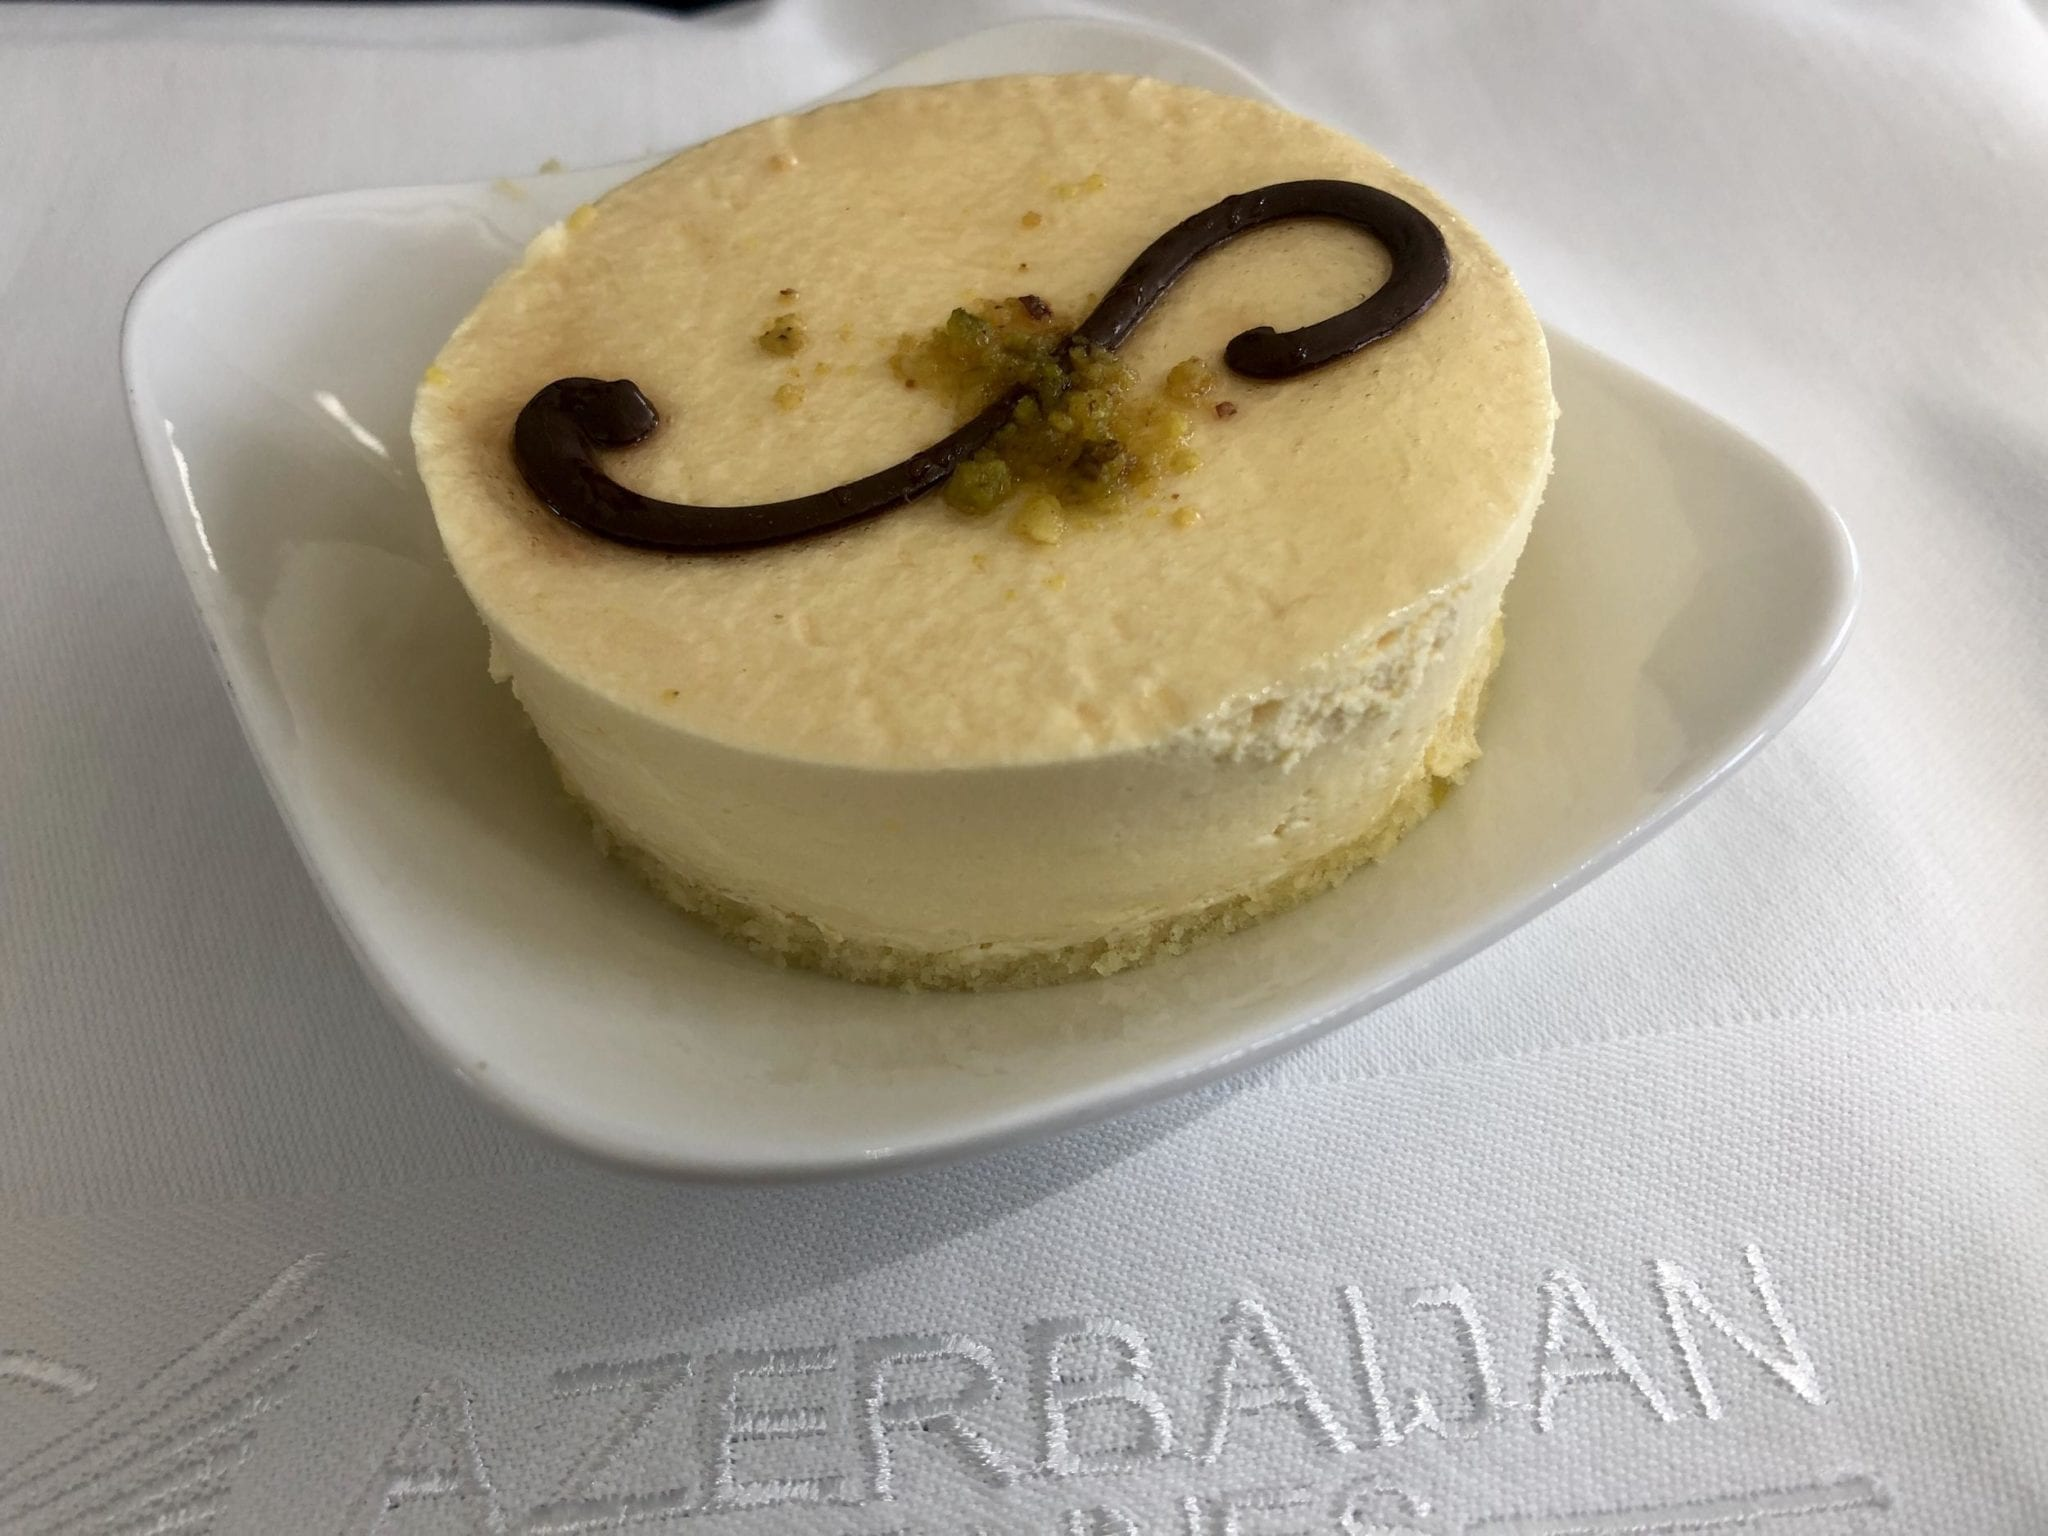 A cheesecake topped with a chocolate swirl in the Azerbaijan Airlines Comfort Club.